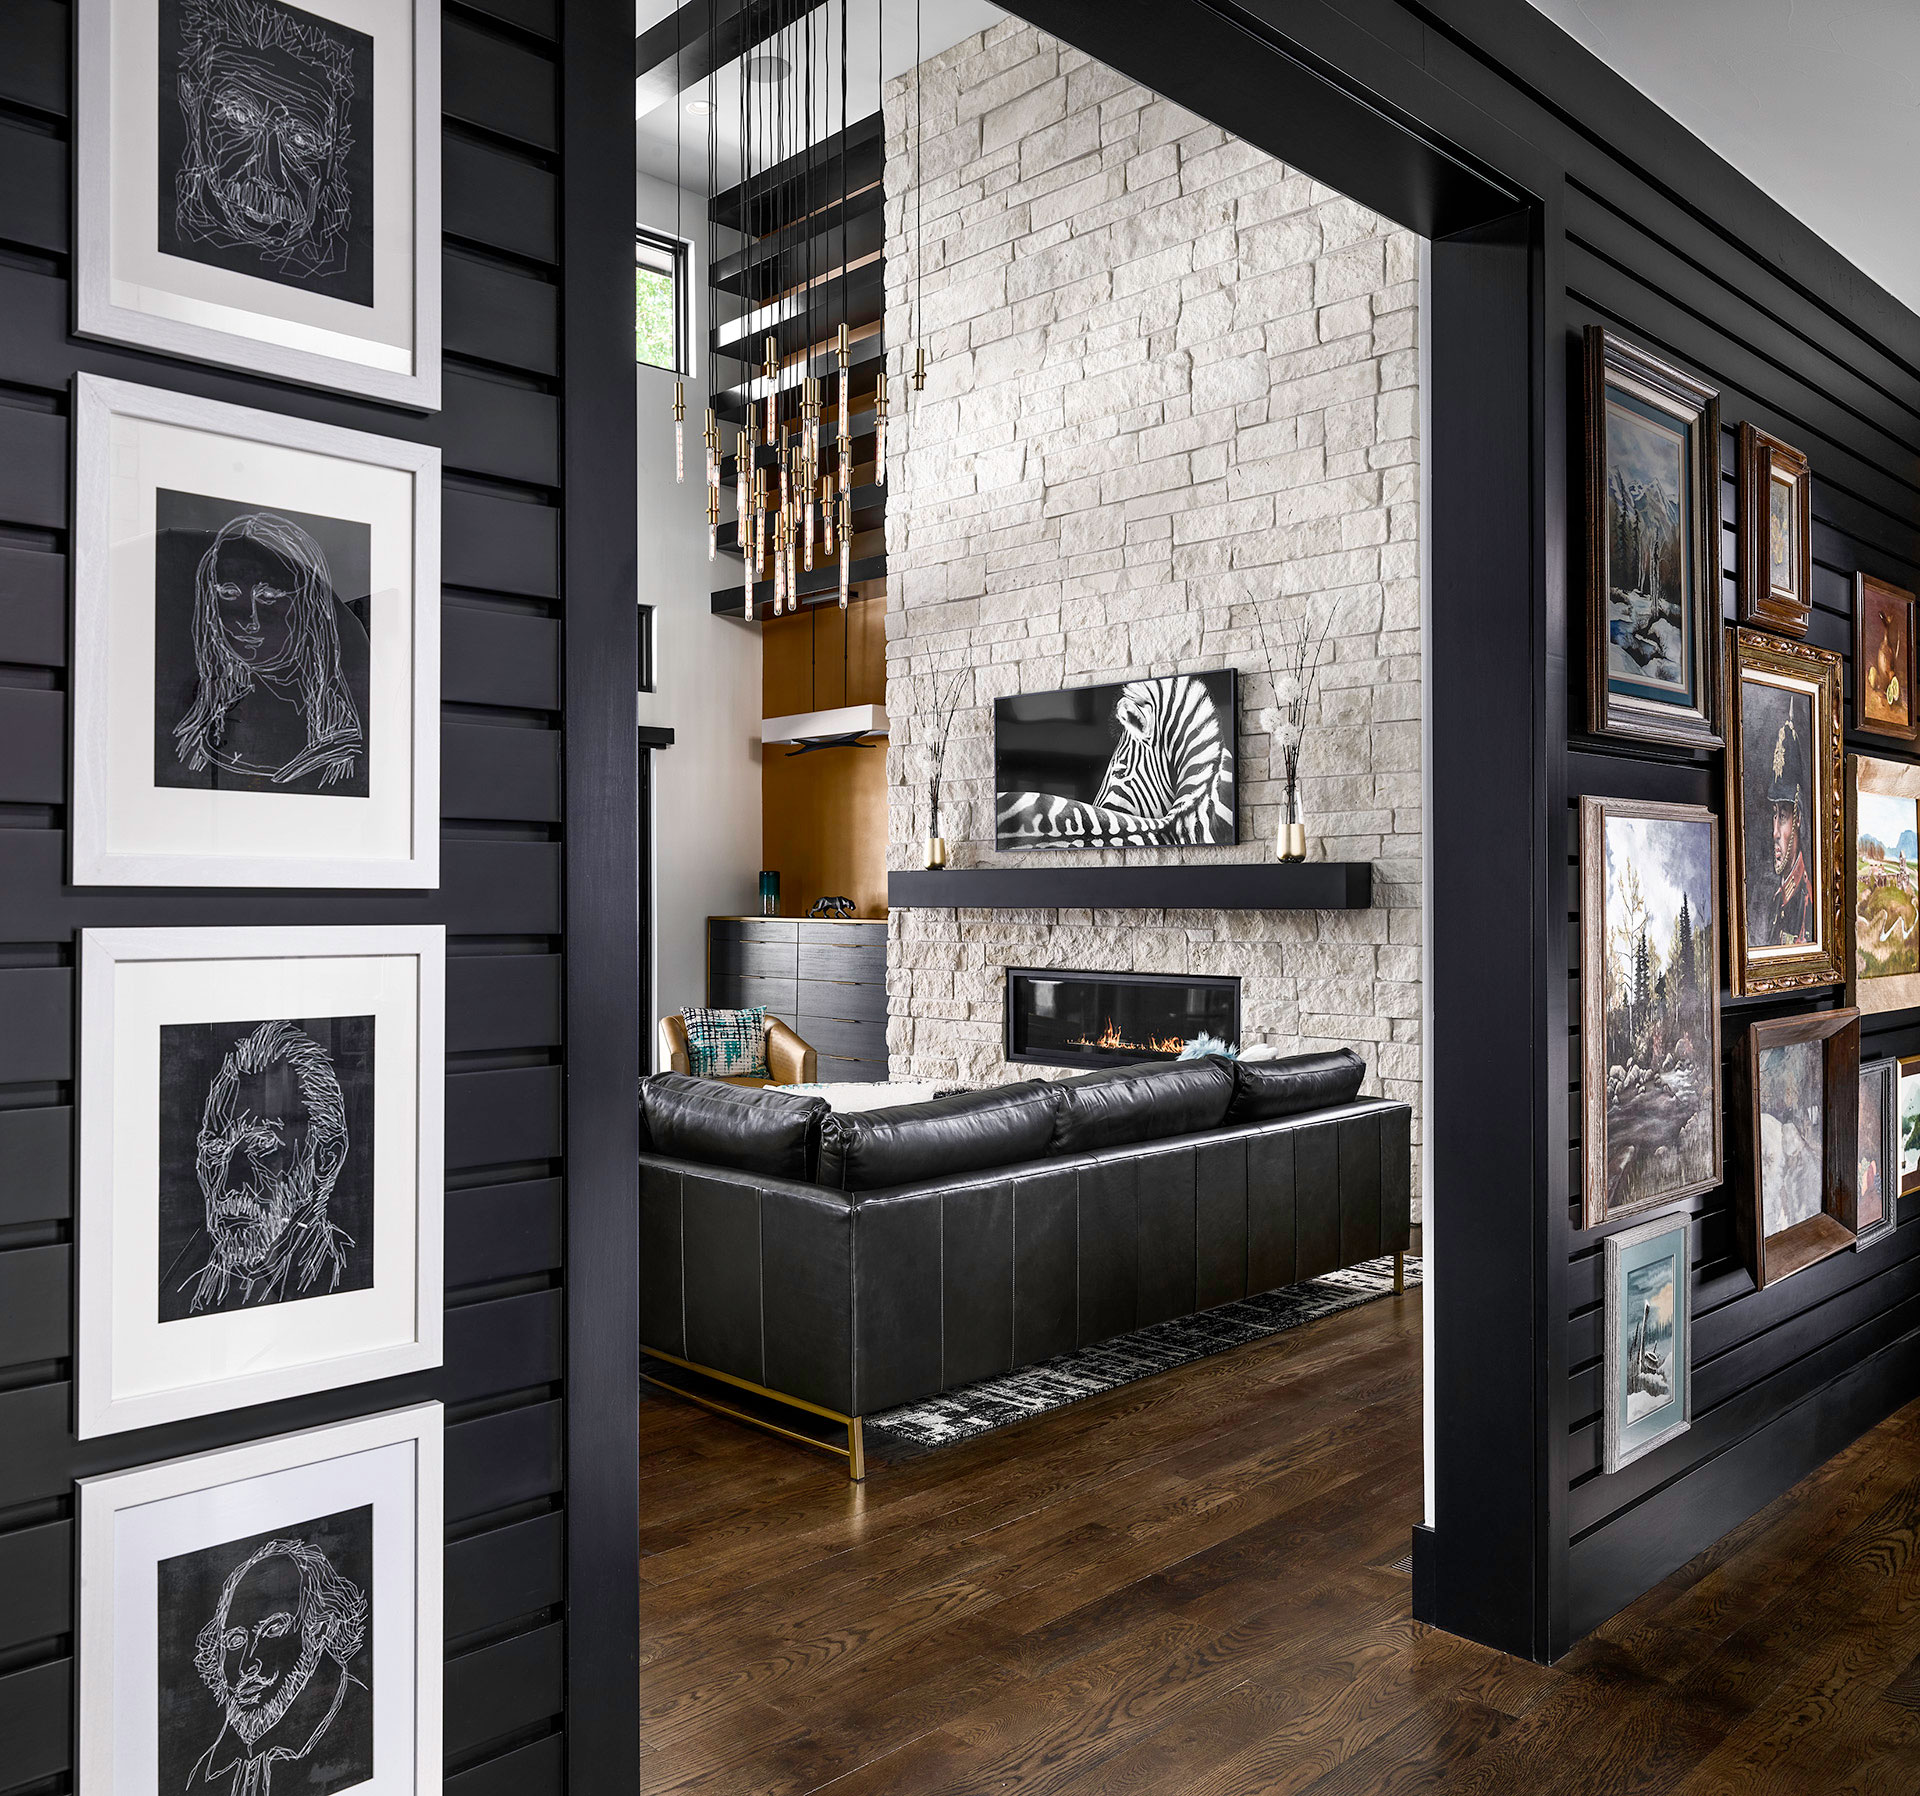 Black-Matte-trim-and-metallic-accent-paints-made-ths-house-one-our-most-unique-house